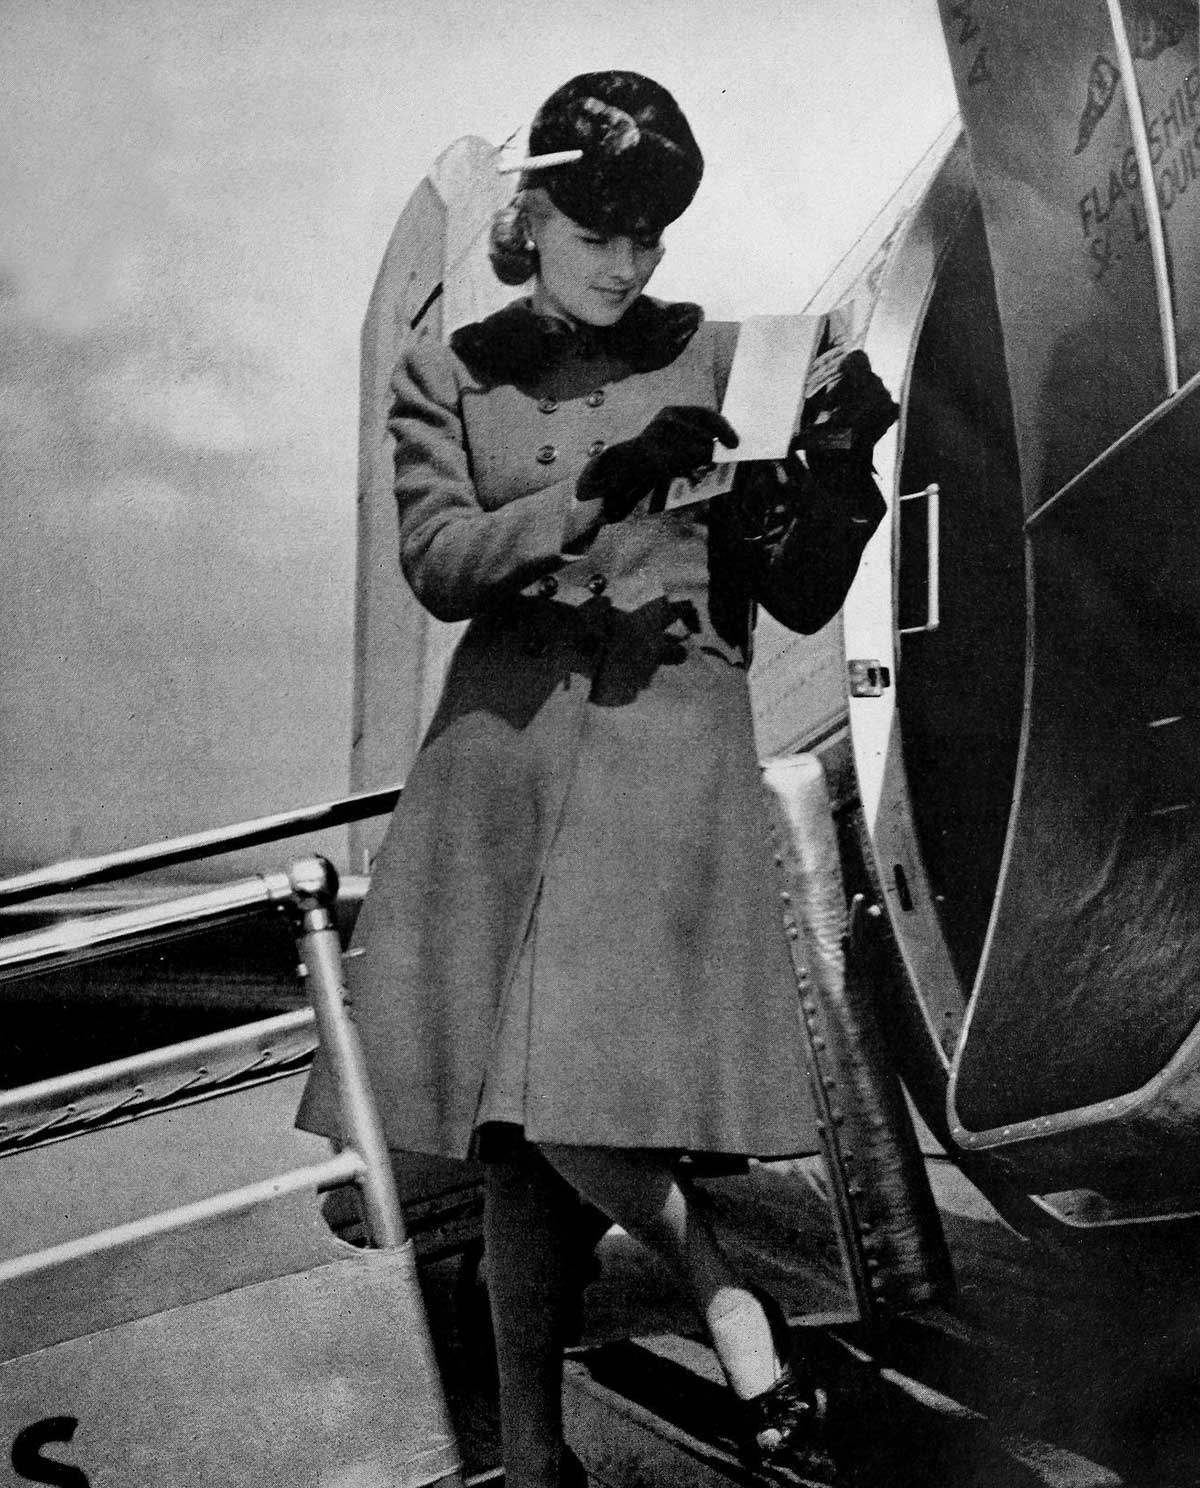 Winter-Dresses-and-Coats-in-1940